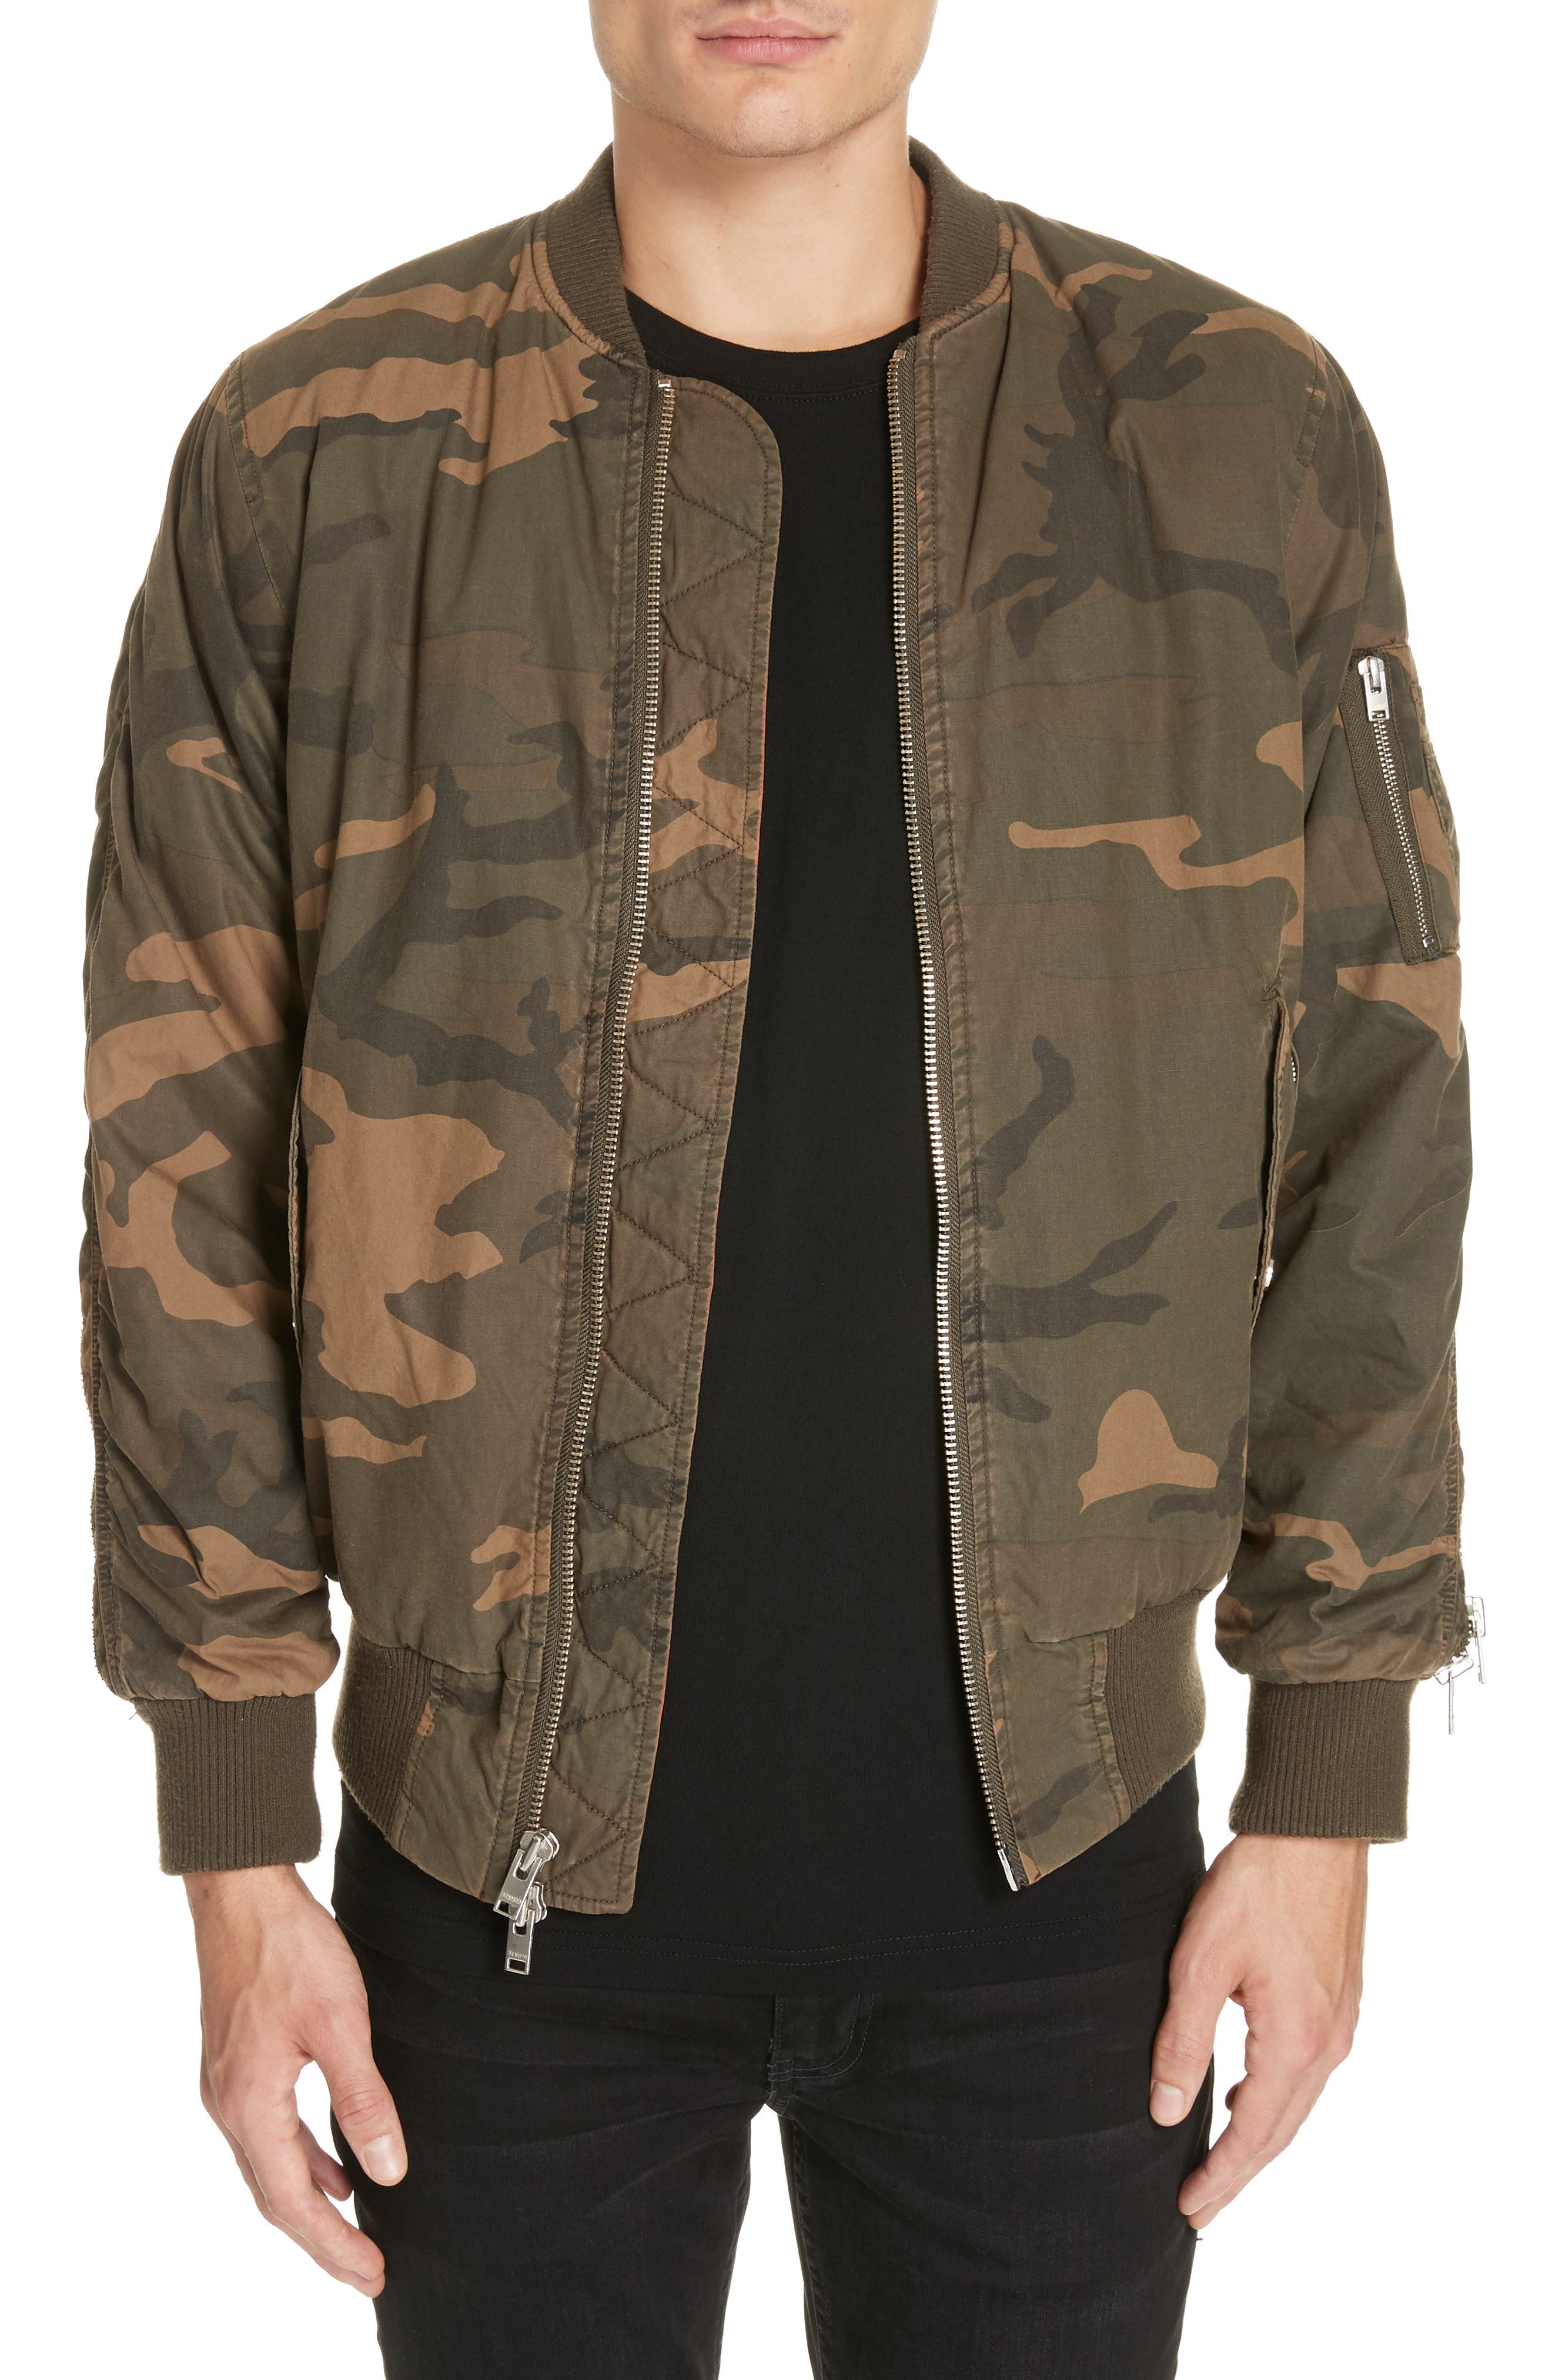 Convoy Strap Bomber Jacket,                         Main,                         color, 310